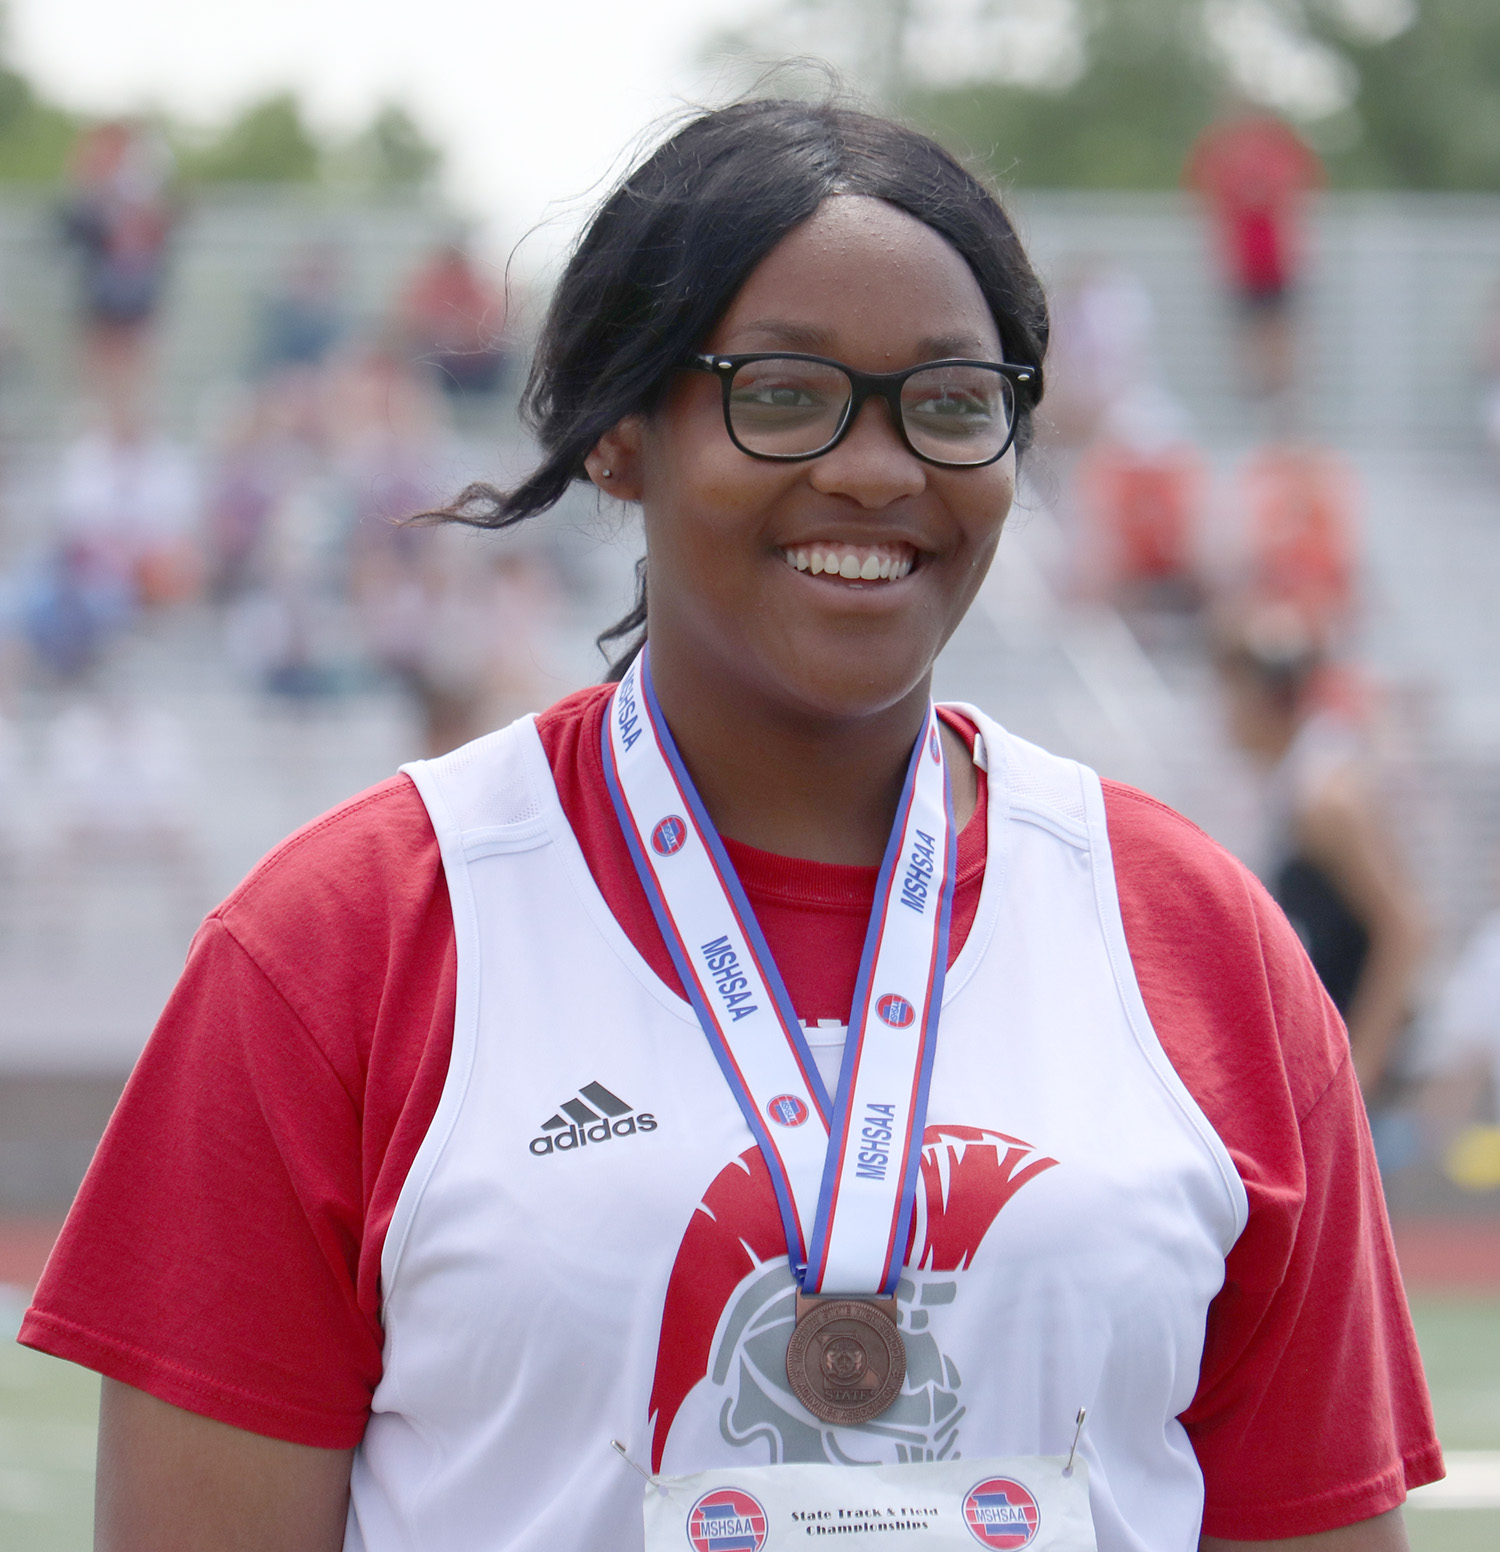 DENNIS SHARKEY/Mound City News  Park Hill's LaShunda Tapp took fifth place in the Class 5 shot put event on Saturday, May 25 in Columbia, Mo.